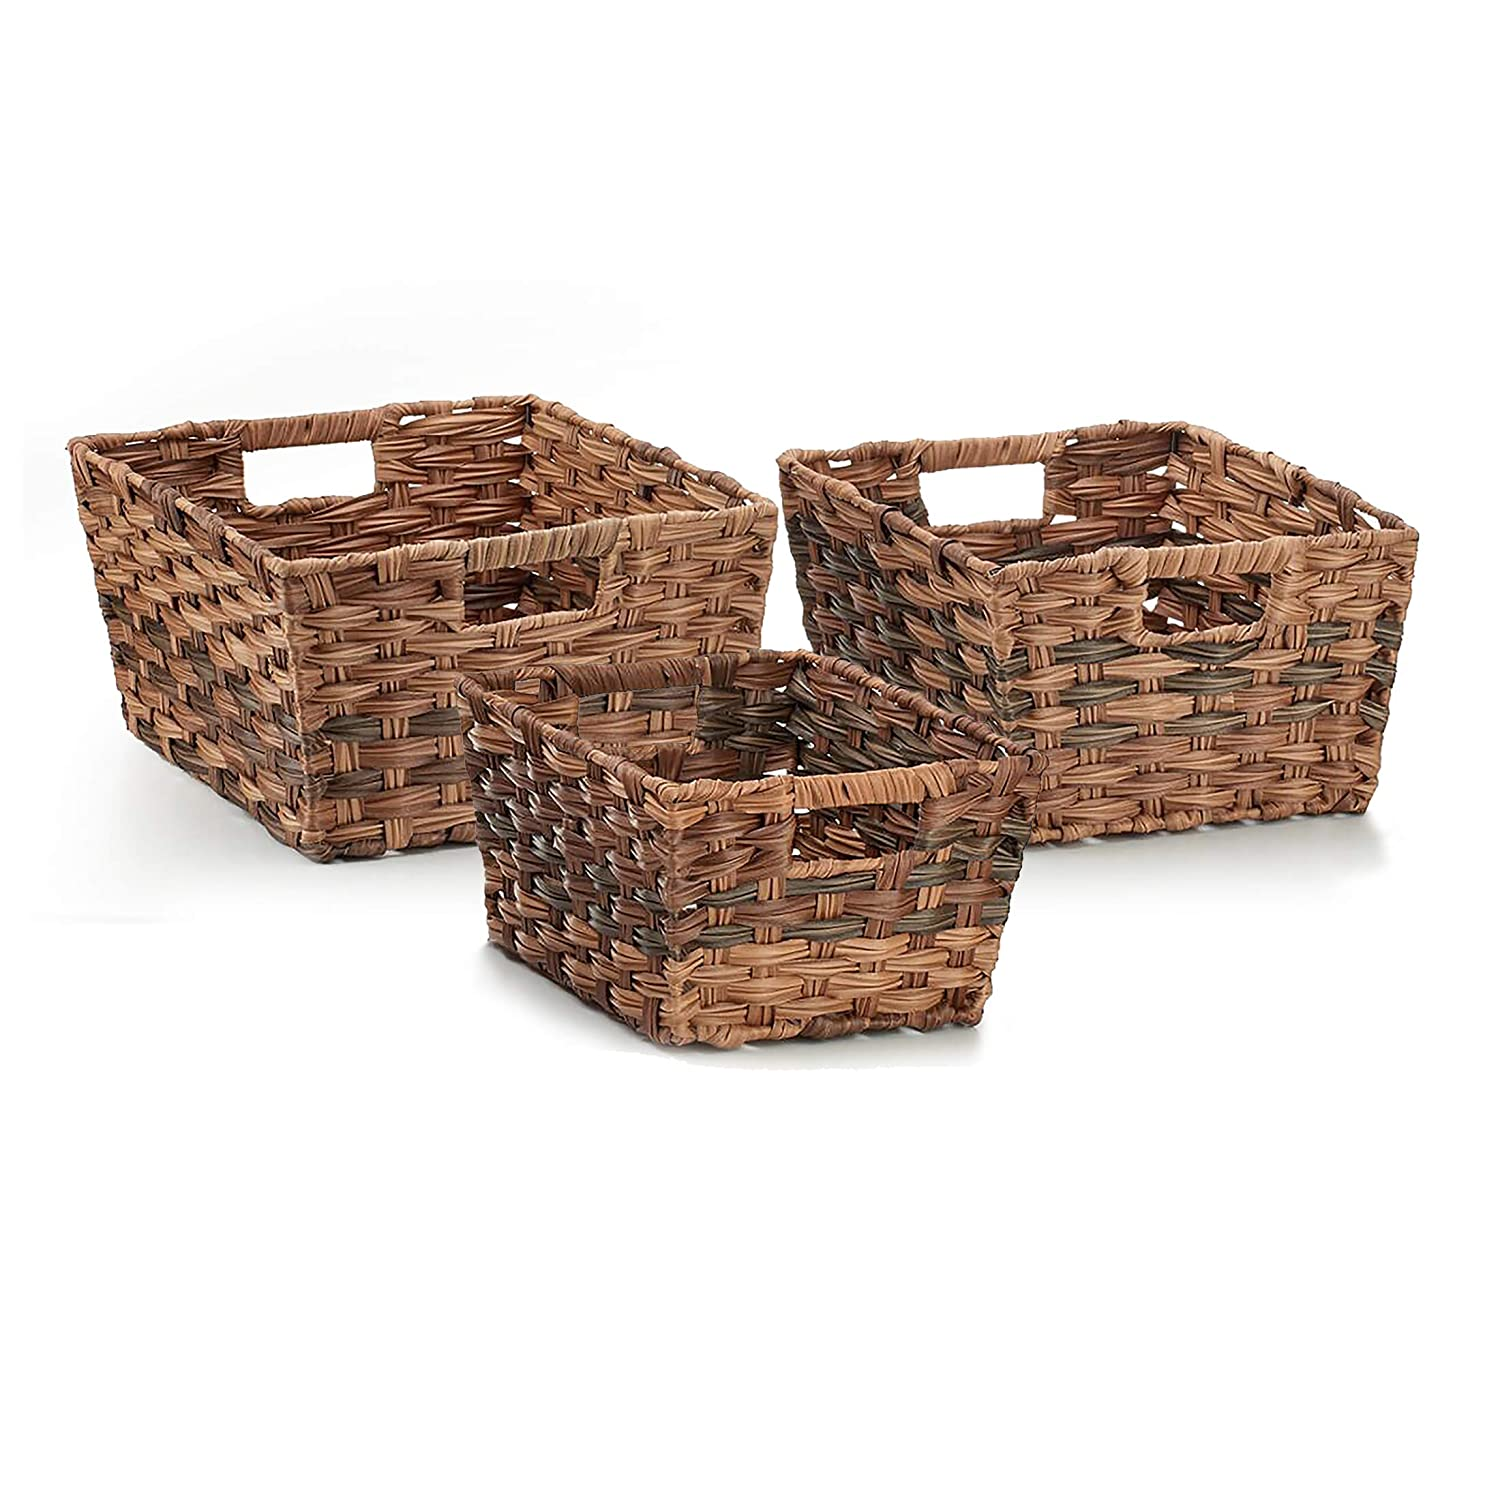 Seville Classics WEB498 Nesting Woven Rectangular Shelf Storage Basket Assortment (3-Piece Set), Granite Gray